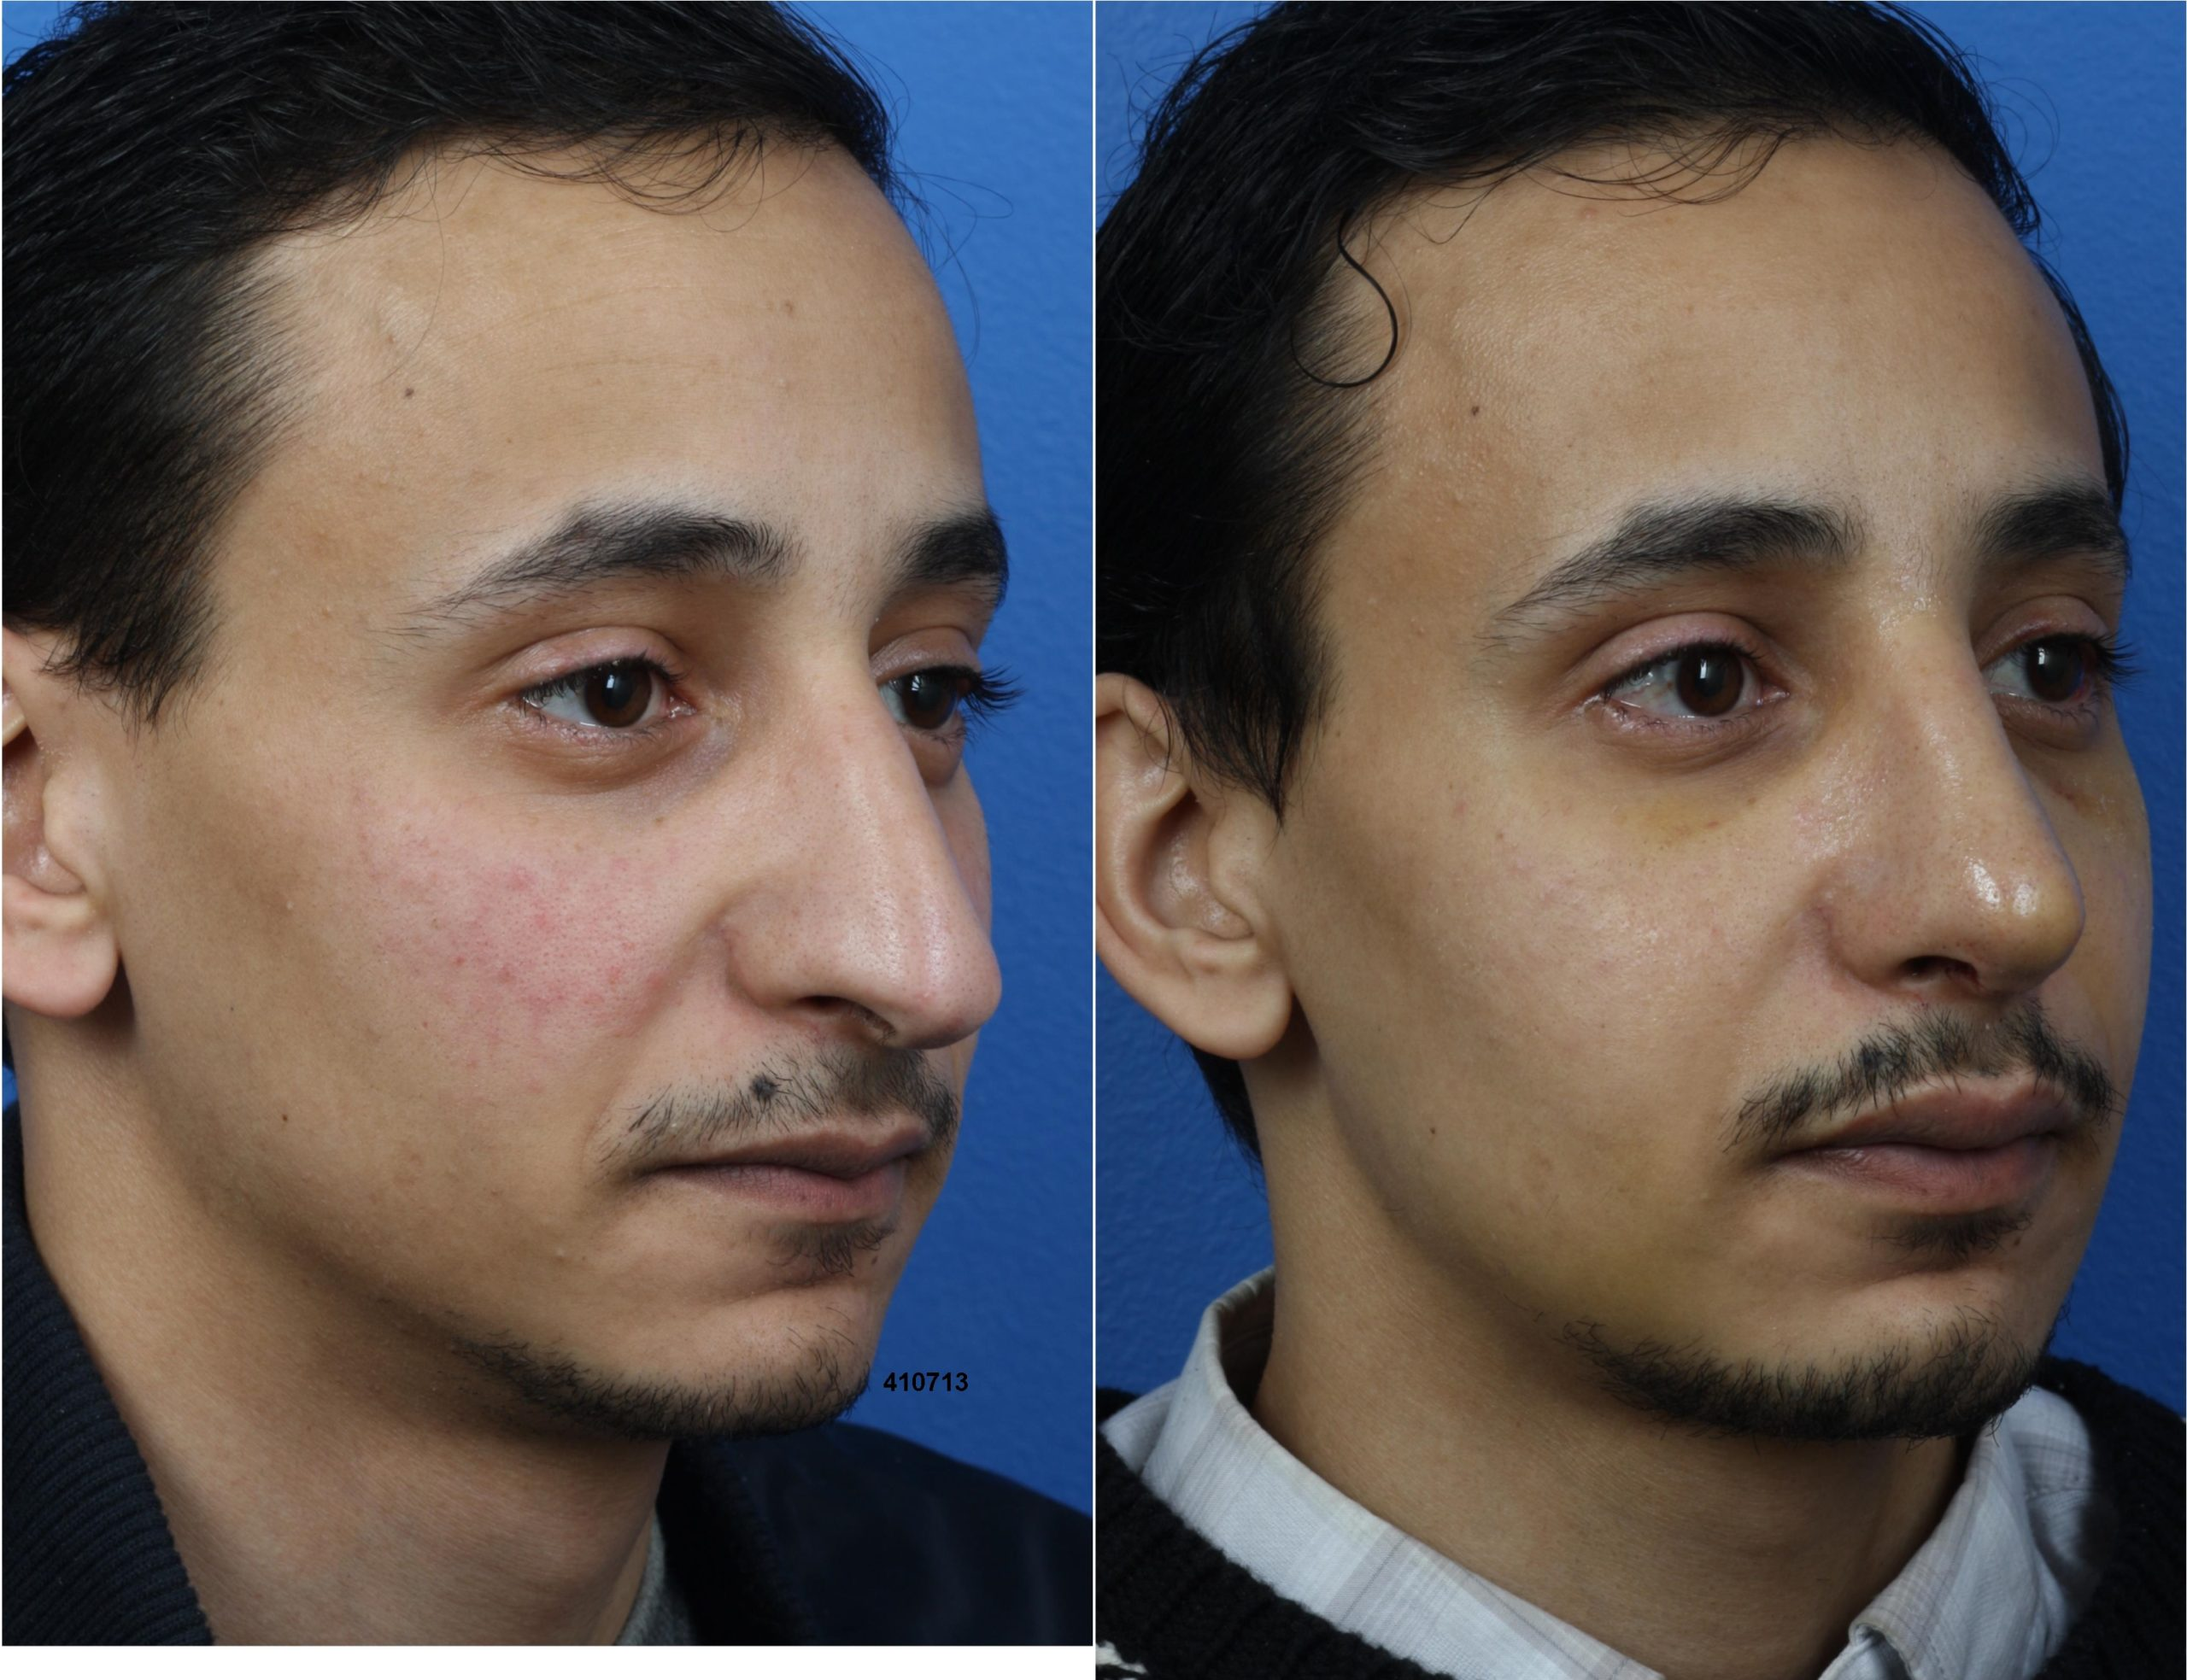 Rhinoplasty to Shorten Nose and Refine Tip by Dr. Miller